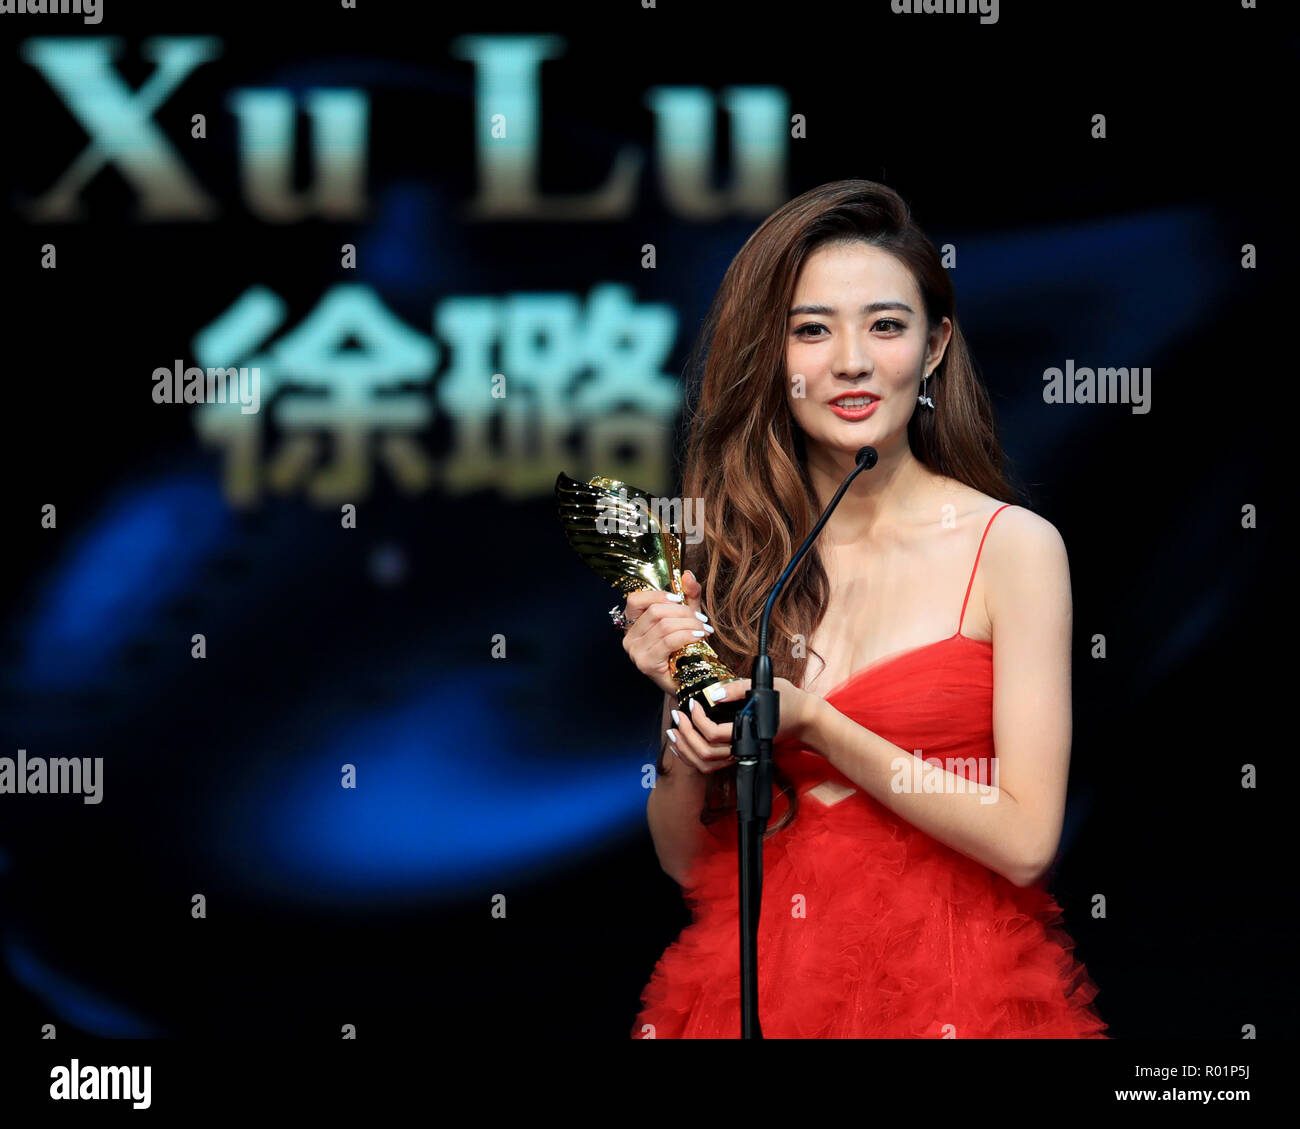 Los Angeles, USA. 30th Oct, 2018. Actress Xu Lu who won the Best New Actress Award, receives the trophy during the awarding ceremony of the 14th Chinese American Film Festival (CAFF) in Los Angeles, the United States, Oct. 30, 2018. The 14th Chinese American Film Festival (CAFF) kicked off Tuesday at the Ricardo Montalban Theater in Hollywood in the U.S. city of Los Angeles. Credit: Li Ying/Xinhua/Alamy Live News - Stock Image